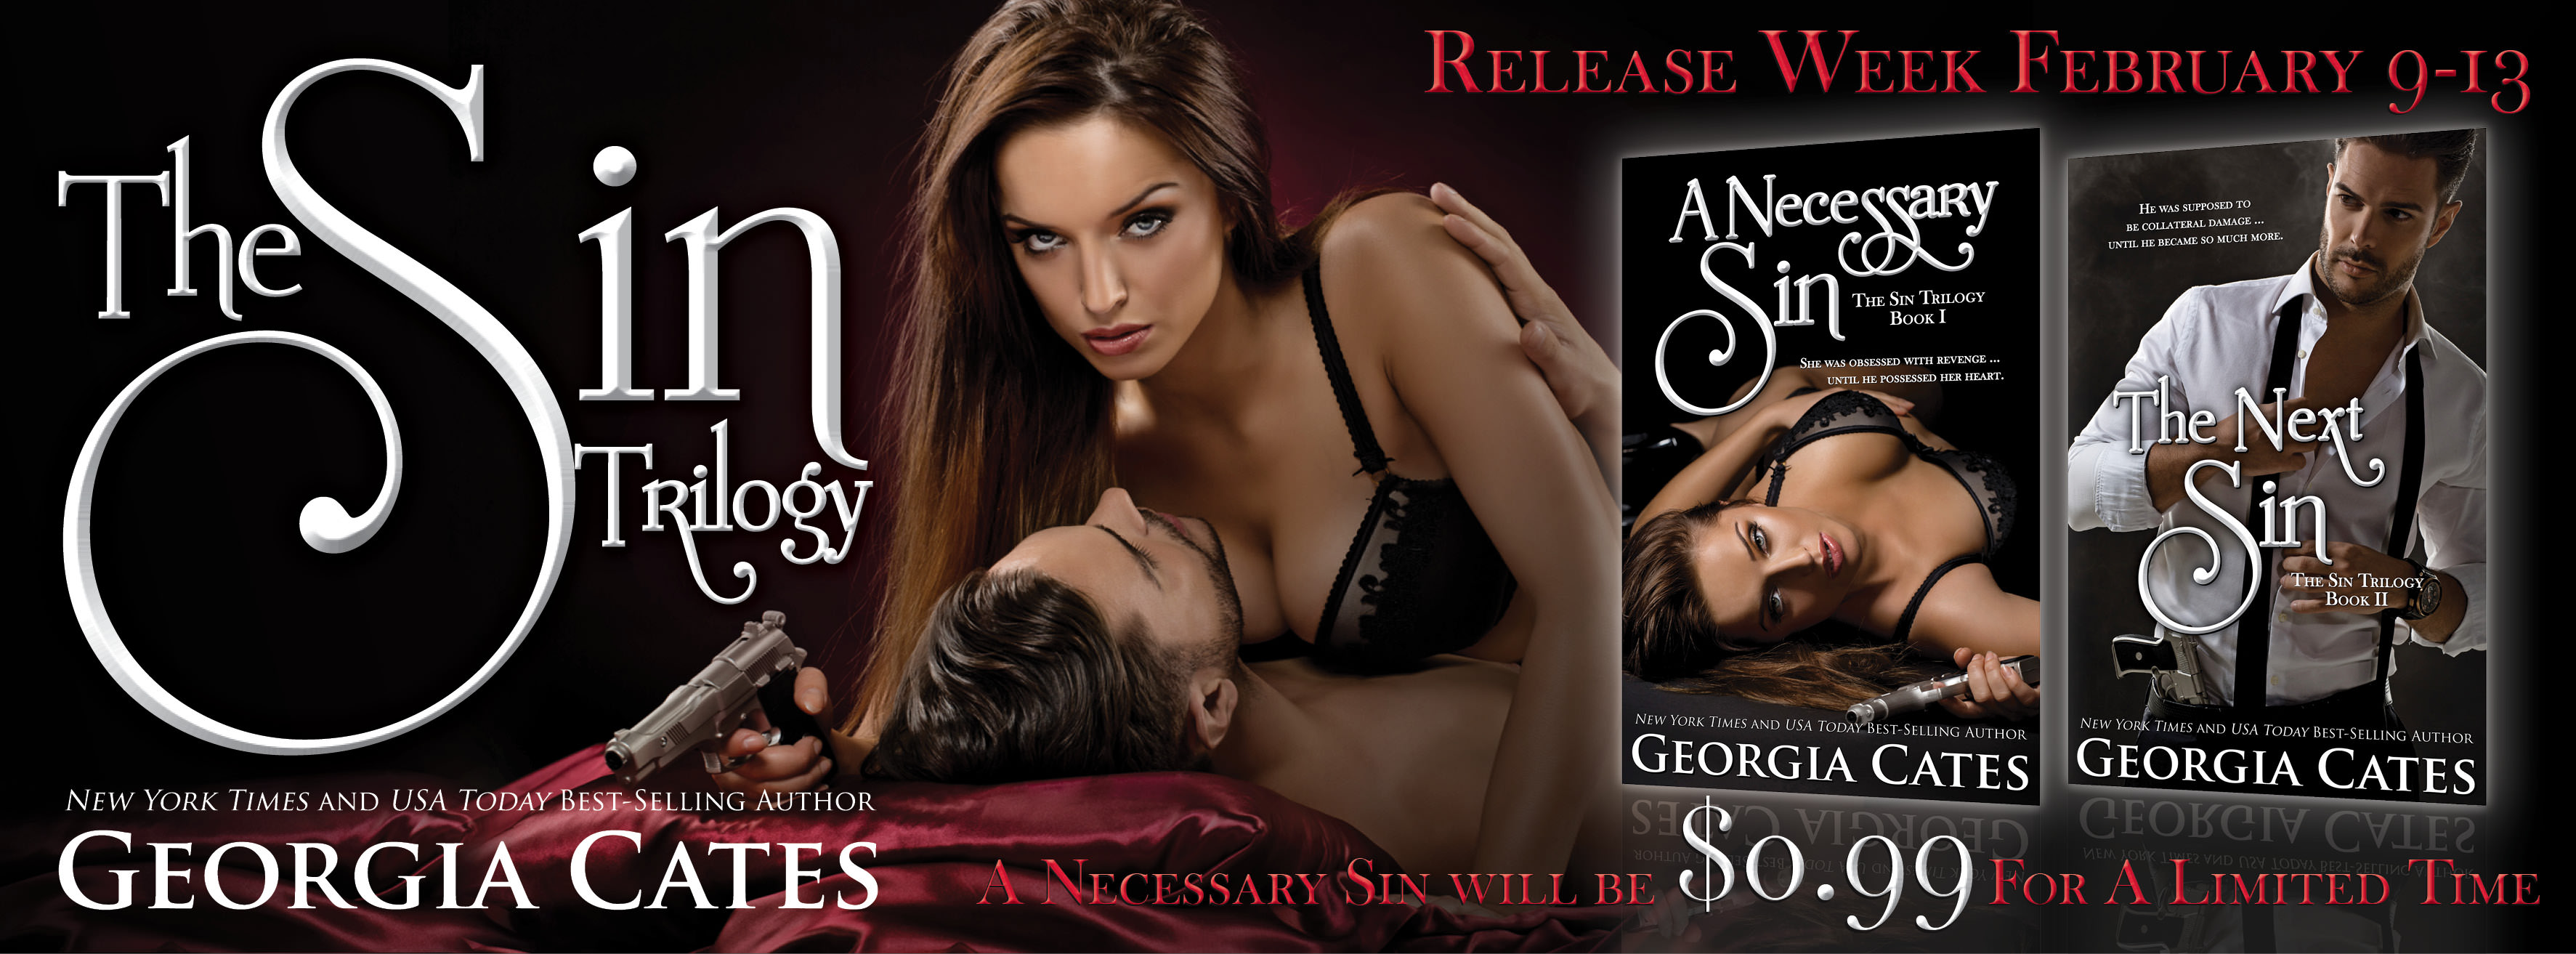 The Next Sin by Georgia Cates Release Day & Giveaway